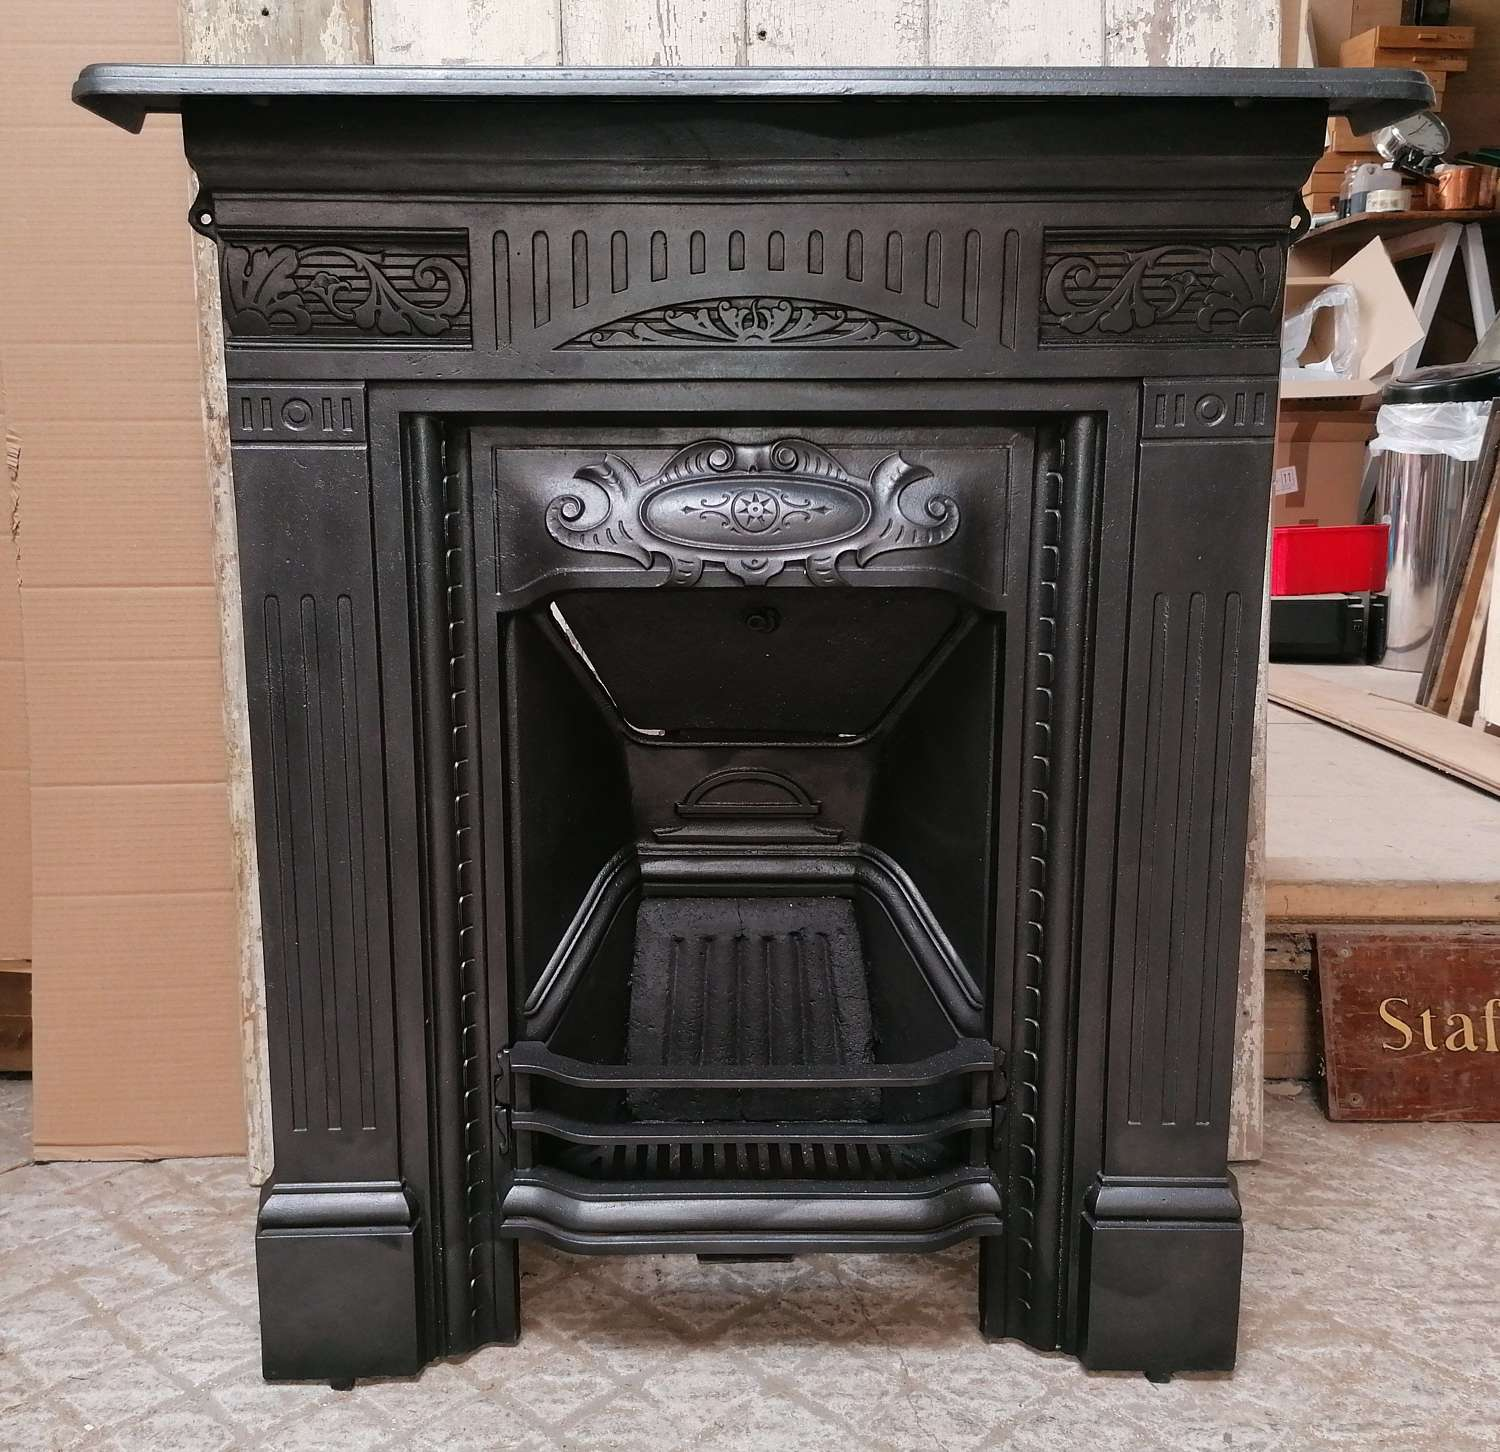 FC0091 AN ORNATE RECLAIMED LATE VICTORIAN CAST IRON COMBINATION FIRE